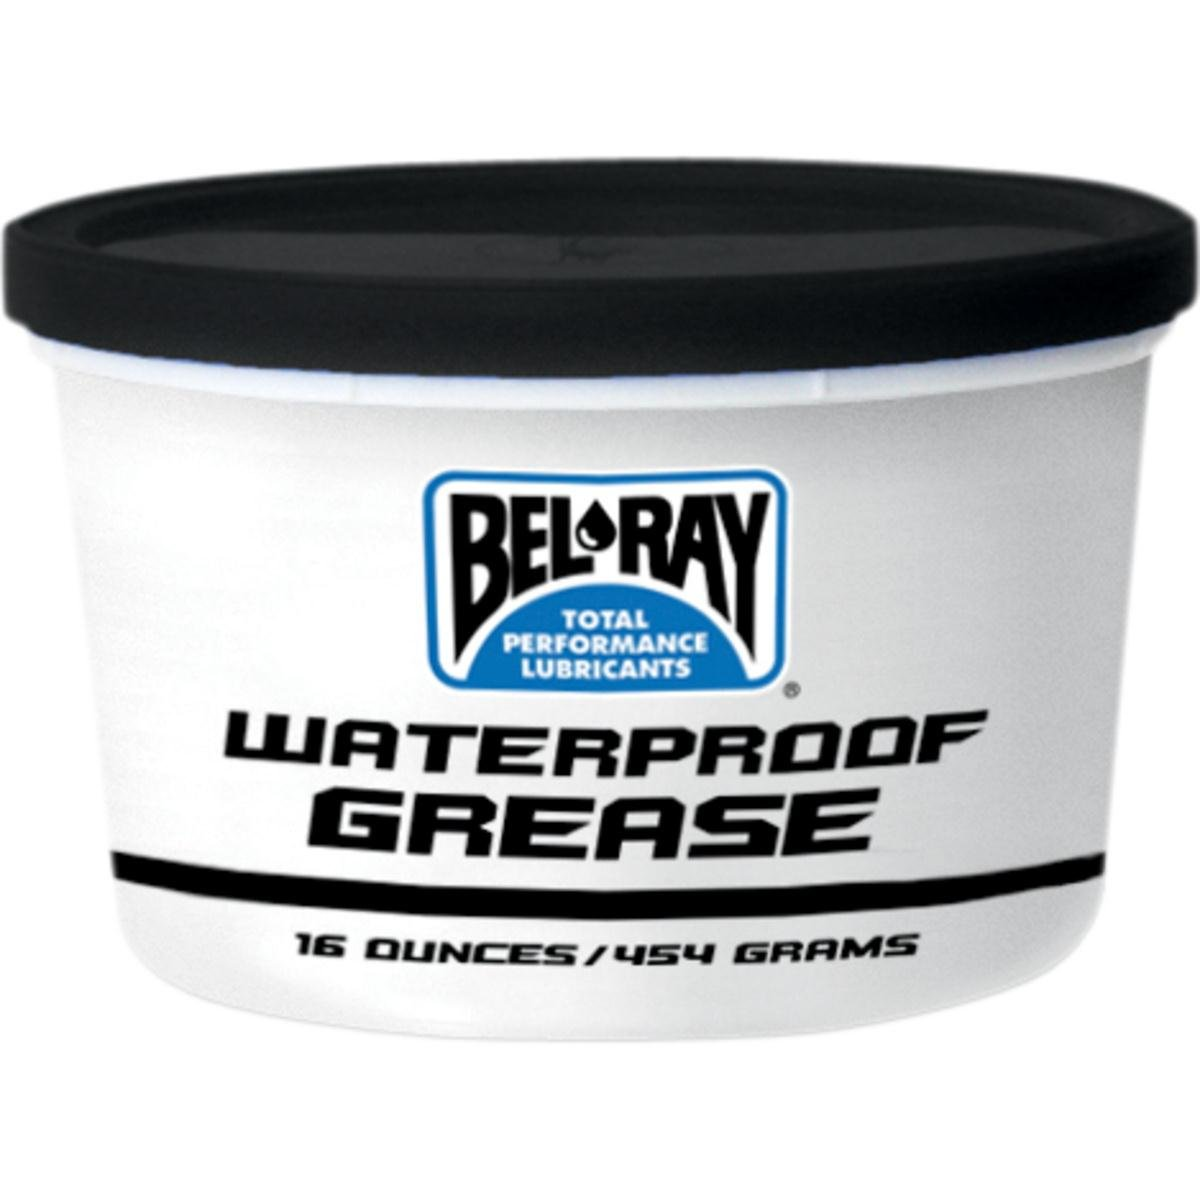 Water Proof Grease bel amil